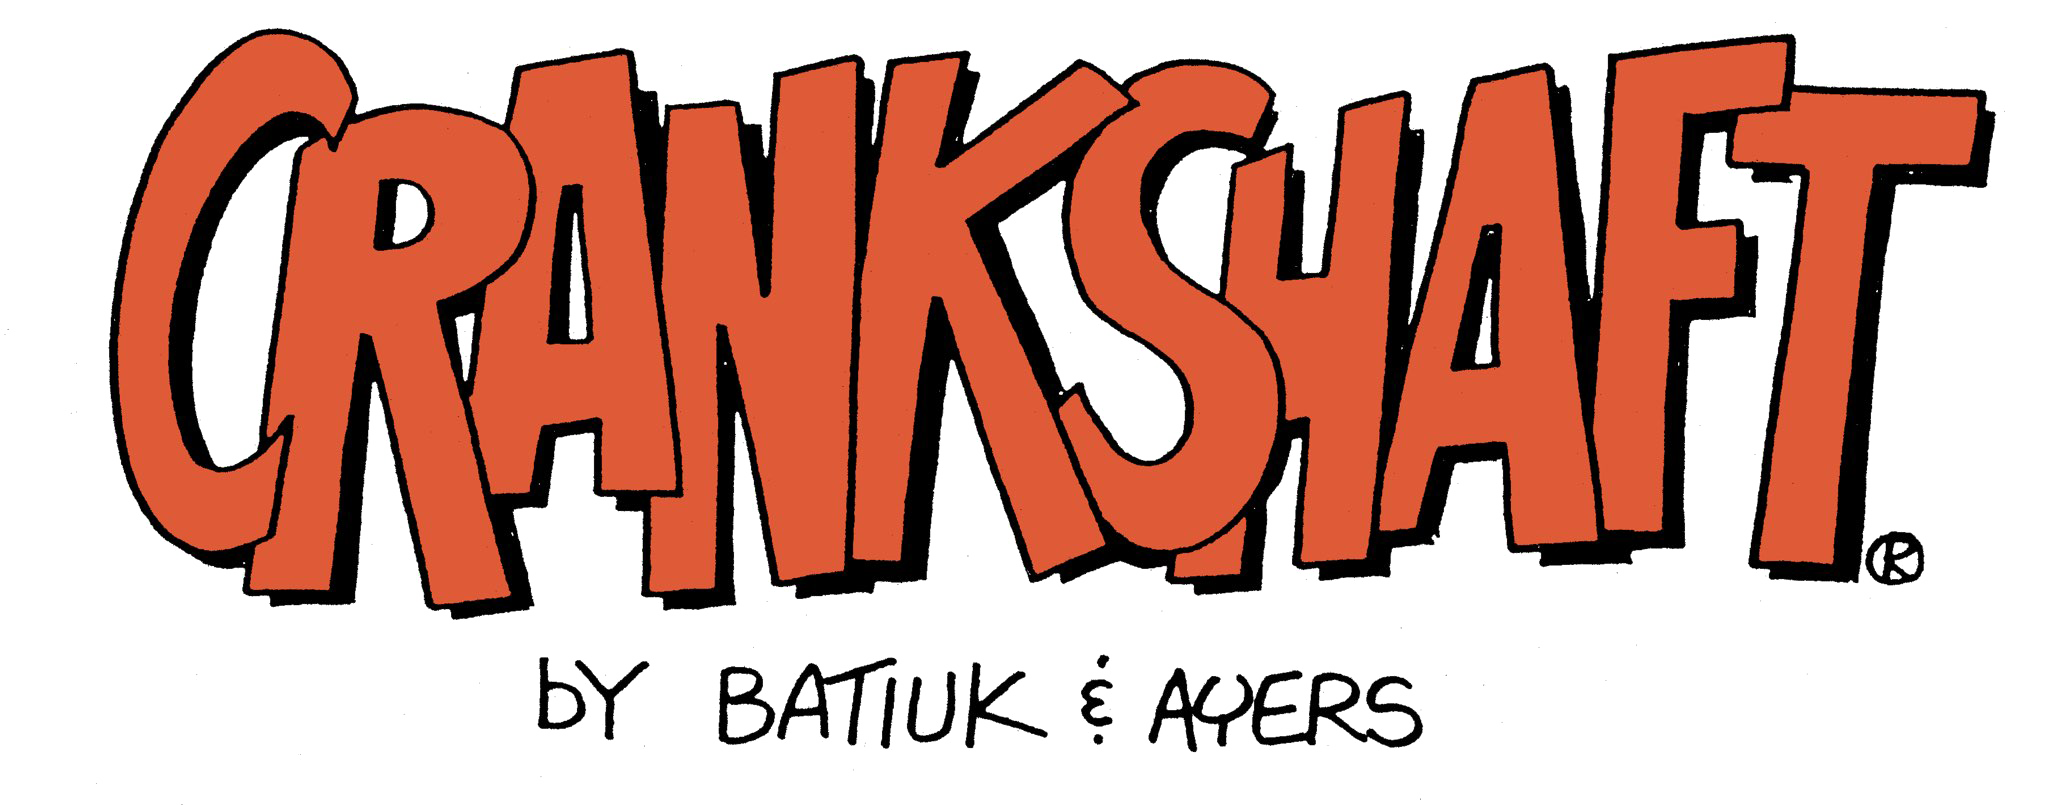 CrankShaft Comic by Tom Batiuk & Chuck Ayers